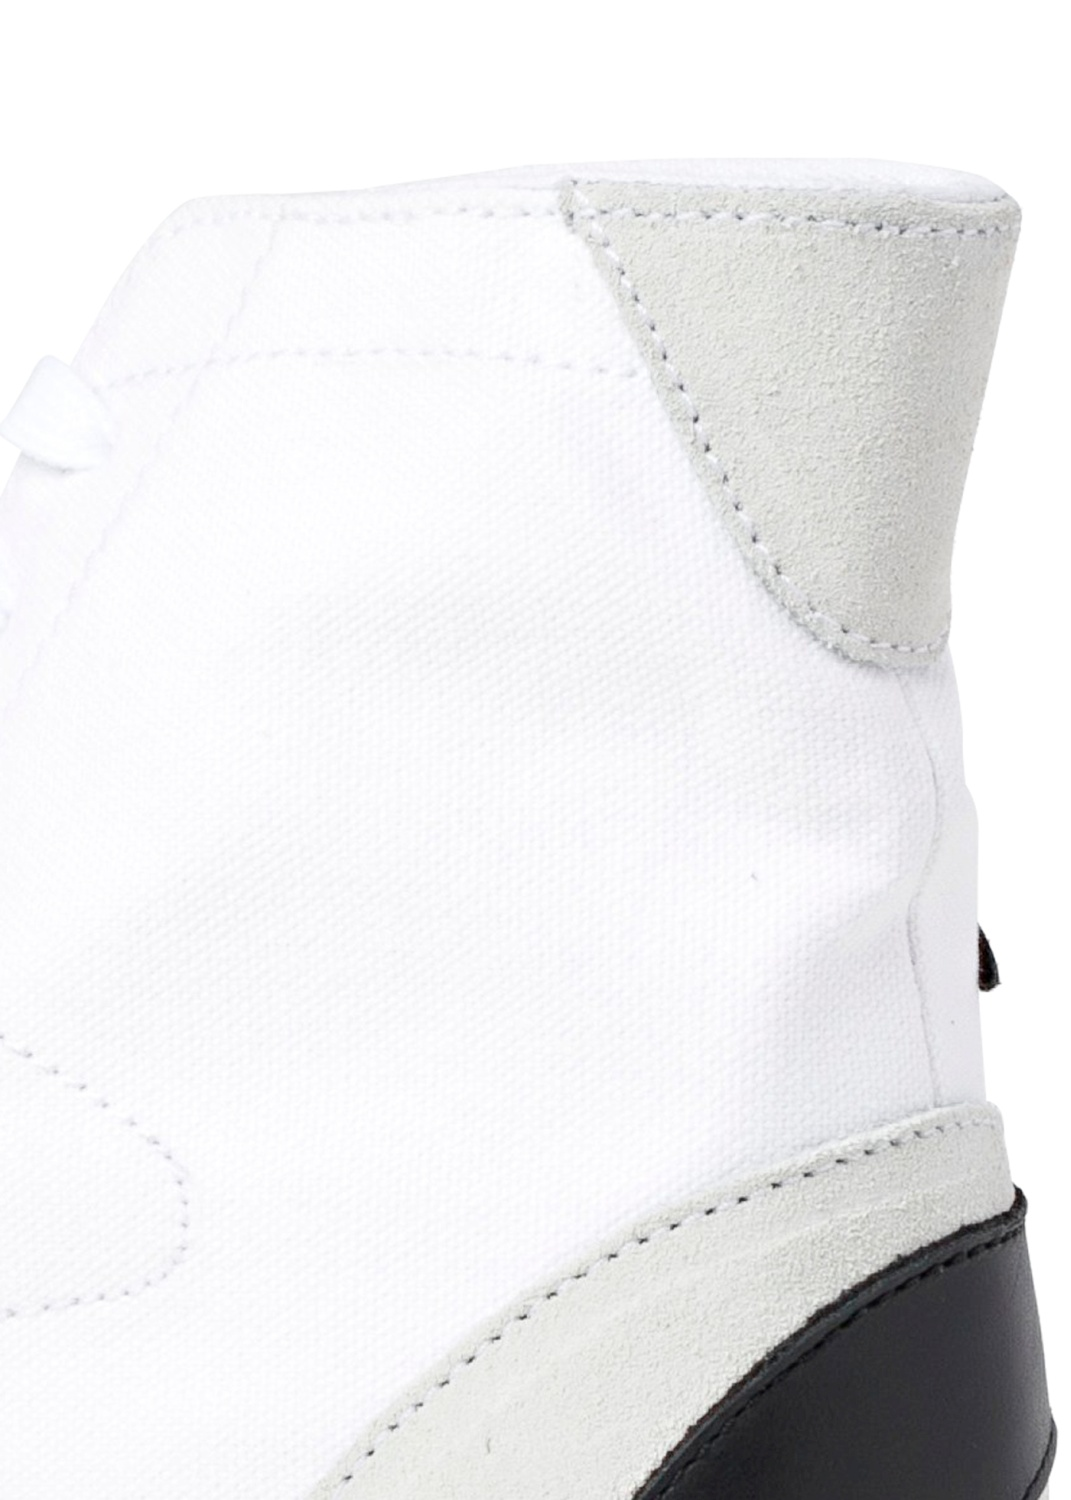 VULC PALM HIGH TOP WHITE BLACK image number 3